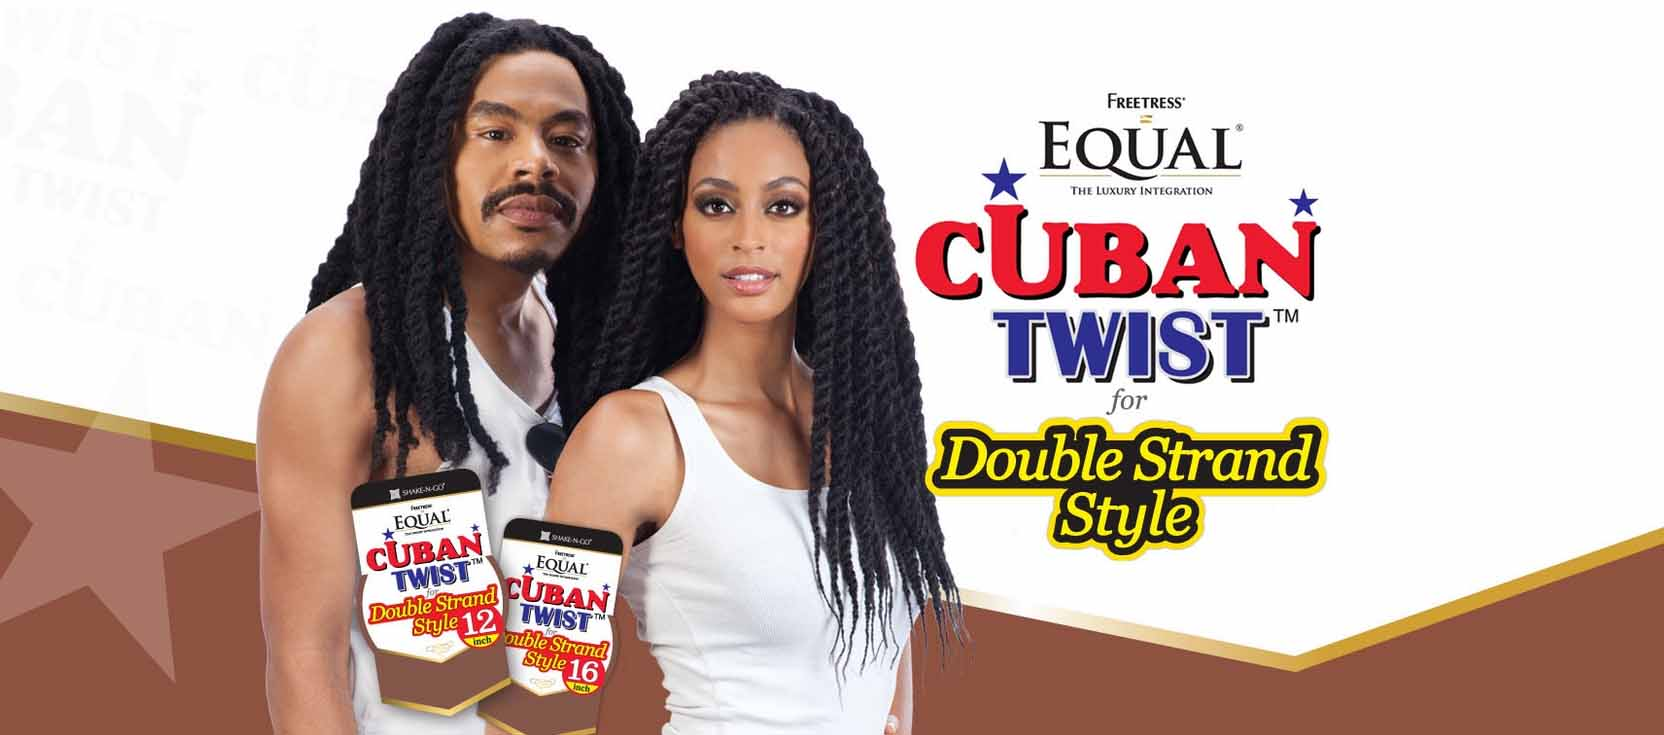 CUBAN TWIST EQUAL